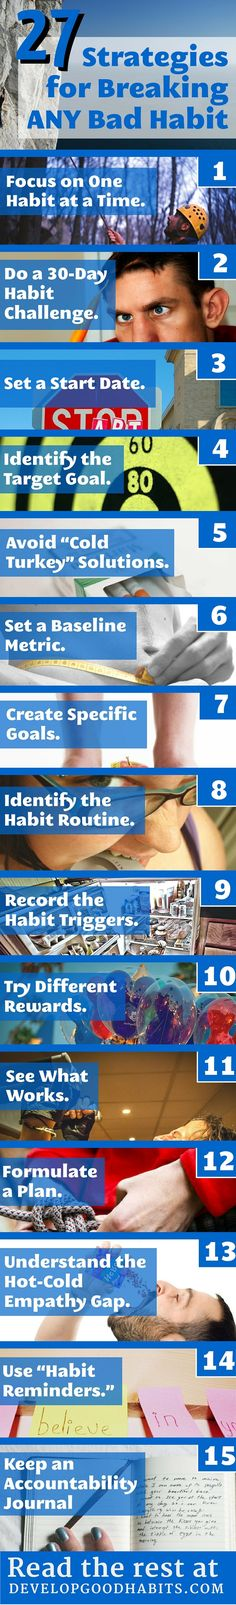 27 tips for quitting any bad habit. Quit smoking. Quit caffeine. Quit chewing your nails. These through self improvement habits will help you quit any bad habit. See website for detailed breakdown of the steps. http://www.developgoodhabits.com/break-bad-habit/